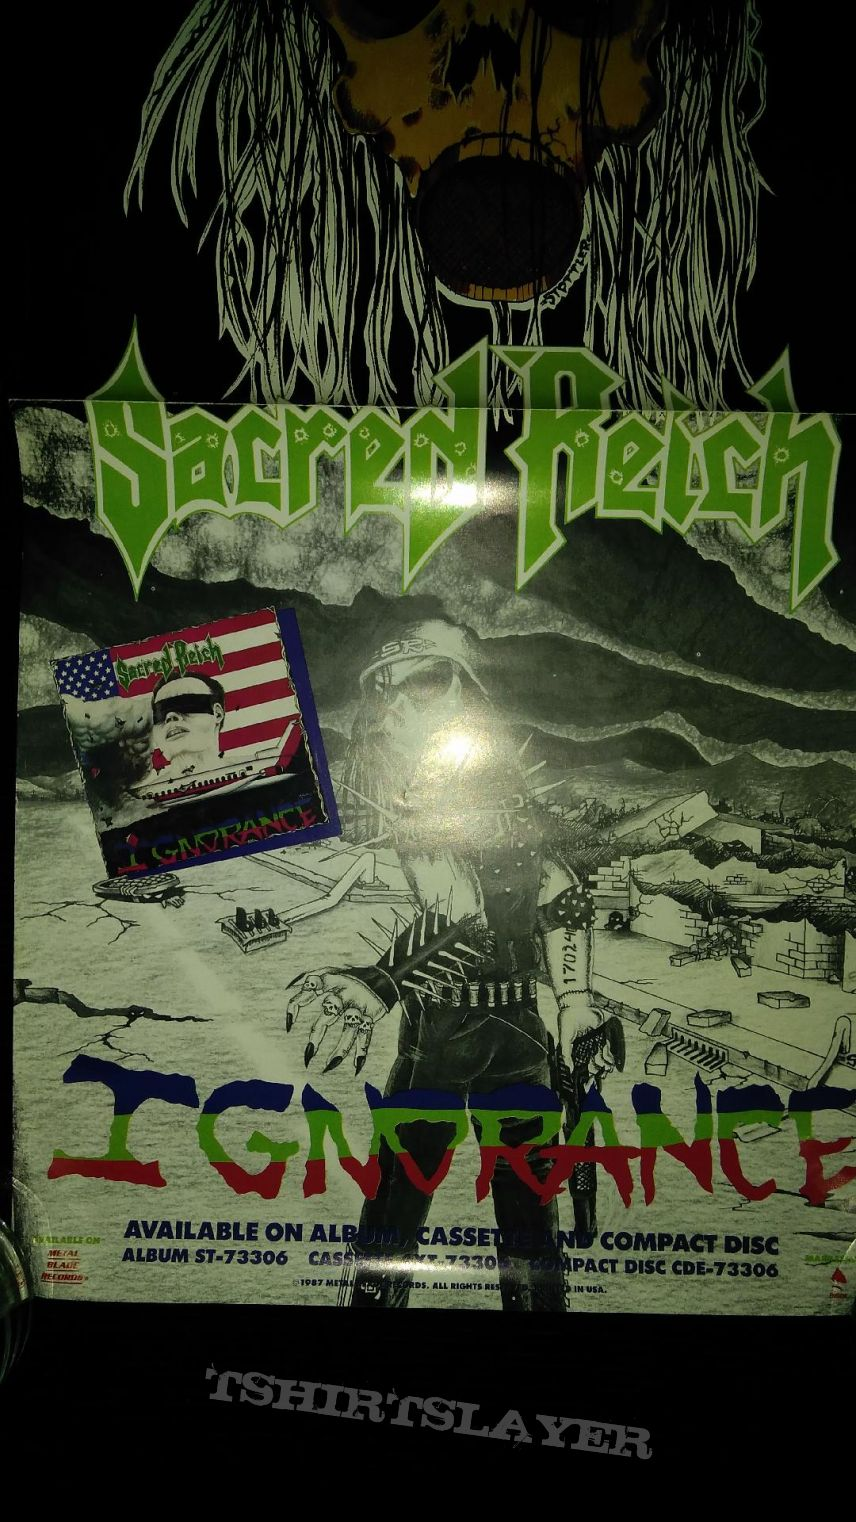 Sacred Reich Promo Poster for ' Ignorance ' LP